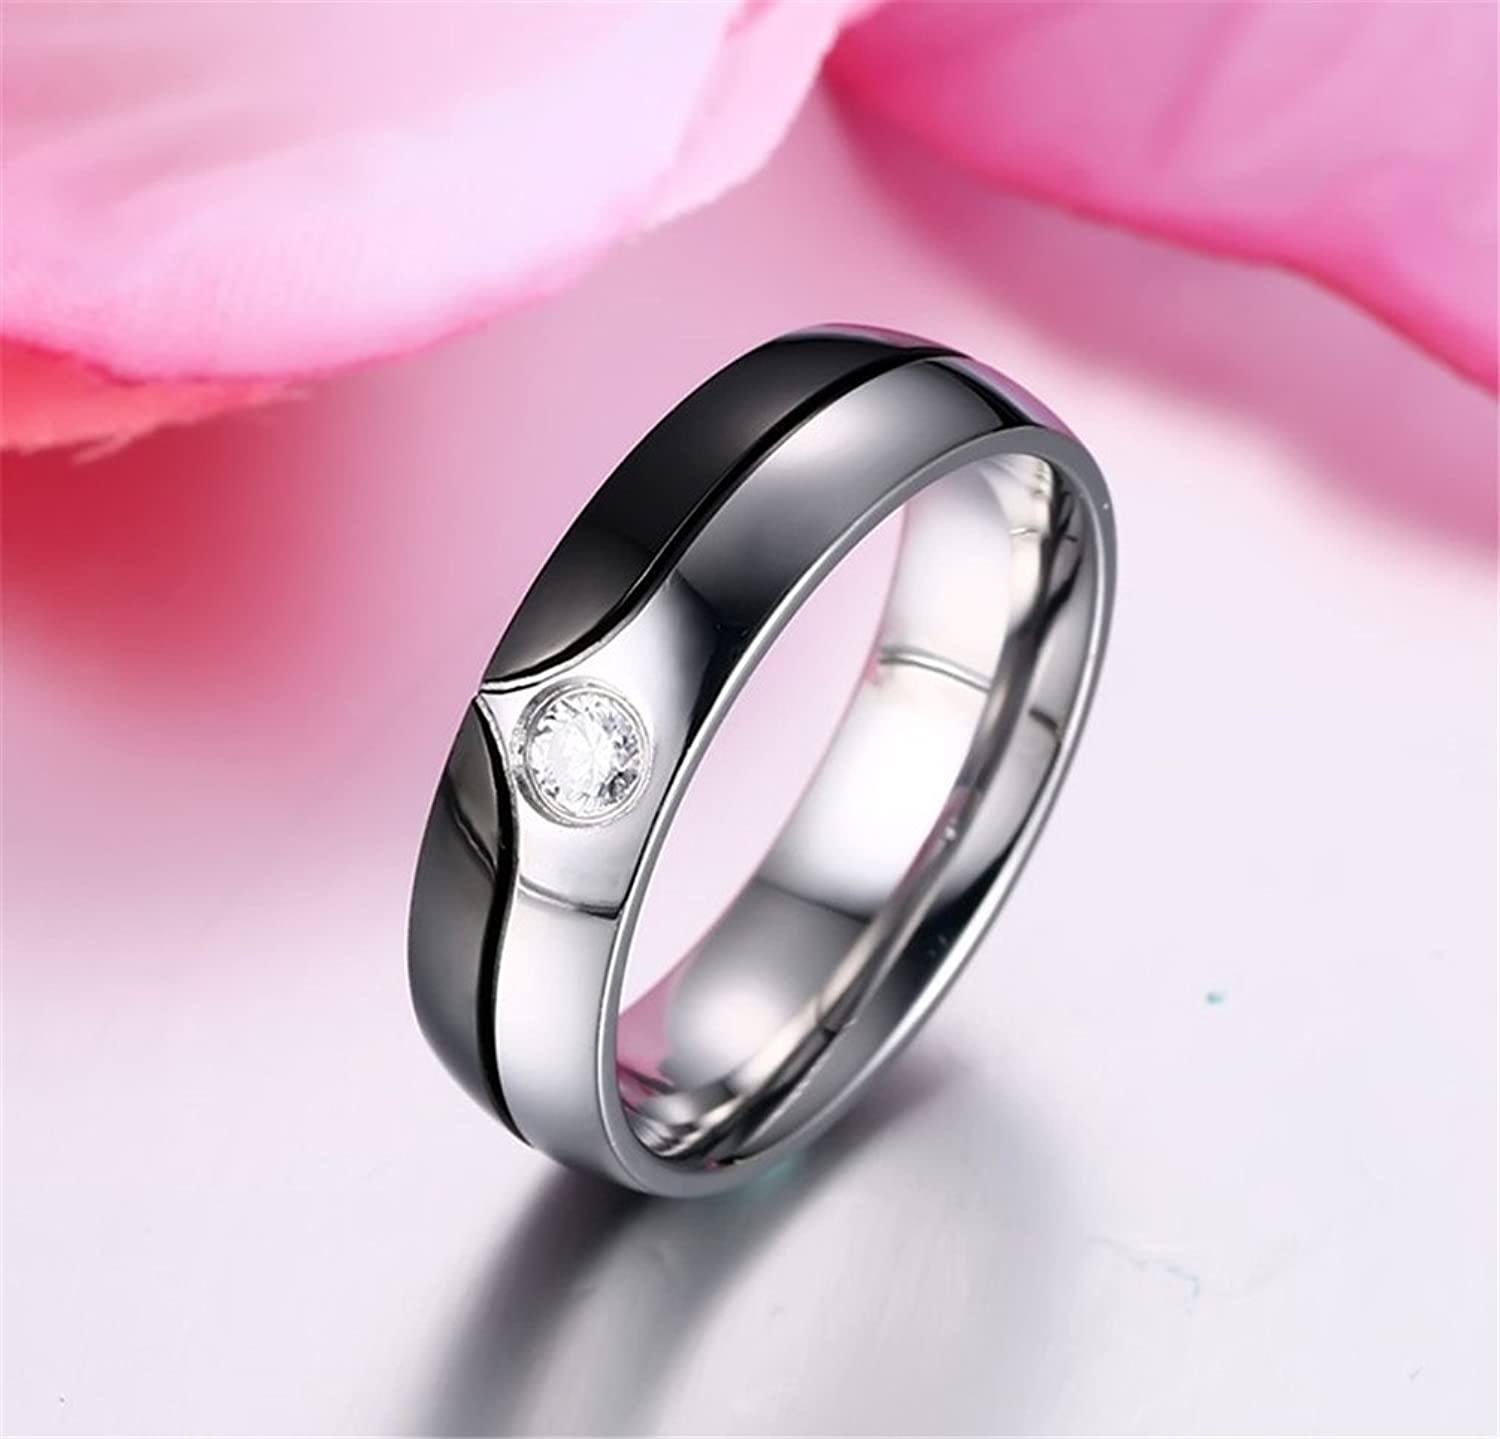 Amazon.com: PAURO Stainless Steel Couples Love Wedding with Small ...